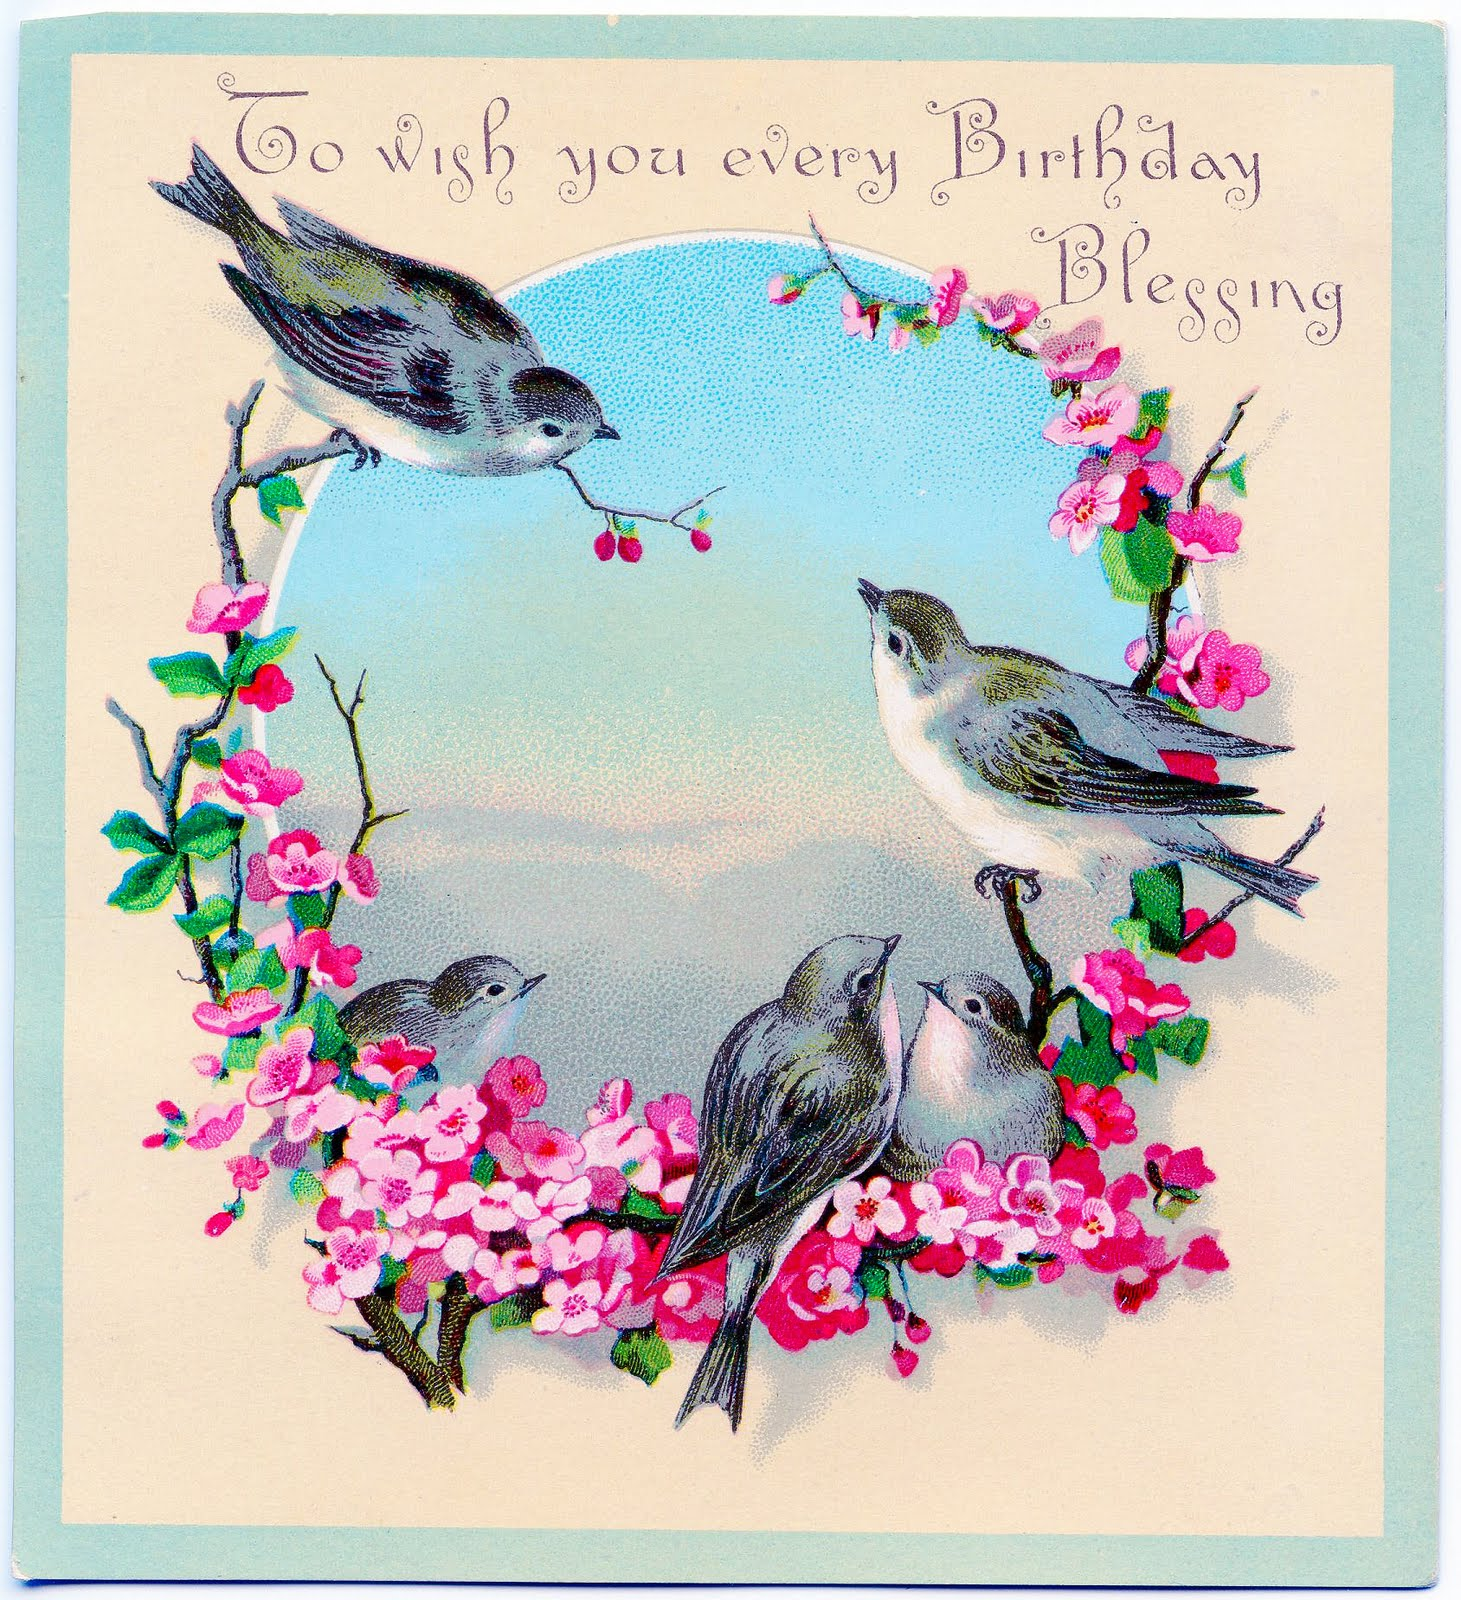 Vintage Clip Art Image Sweet Birds With Flowers Birthday